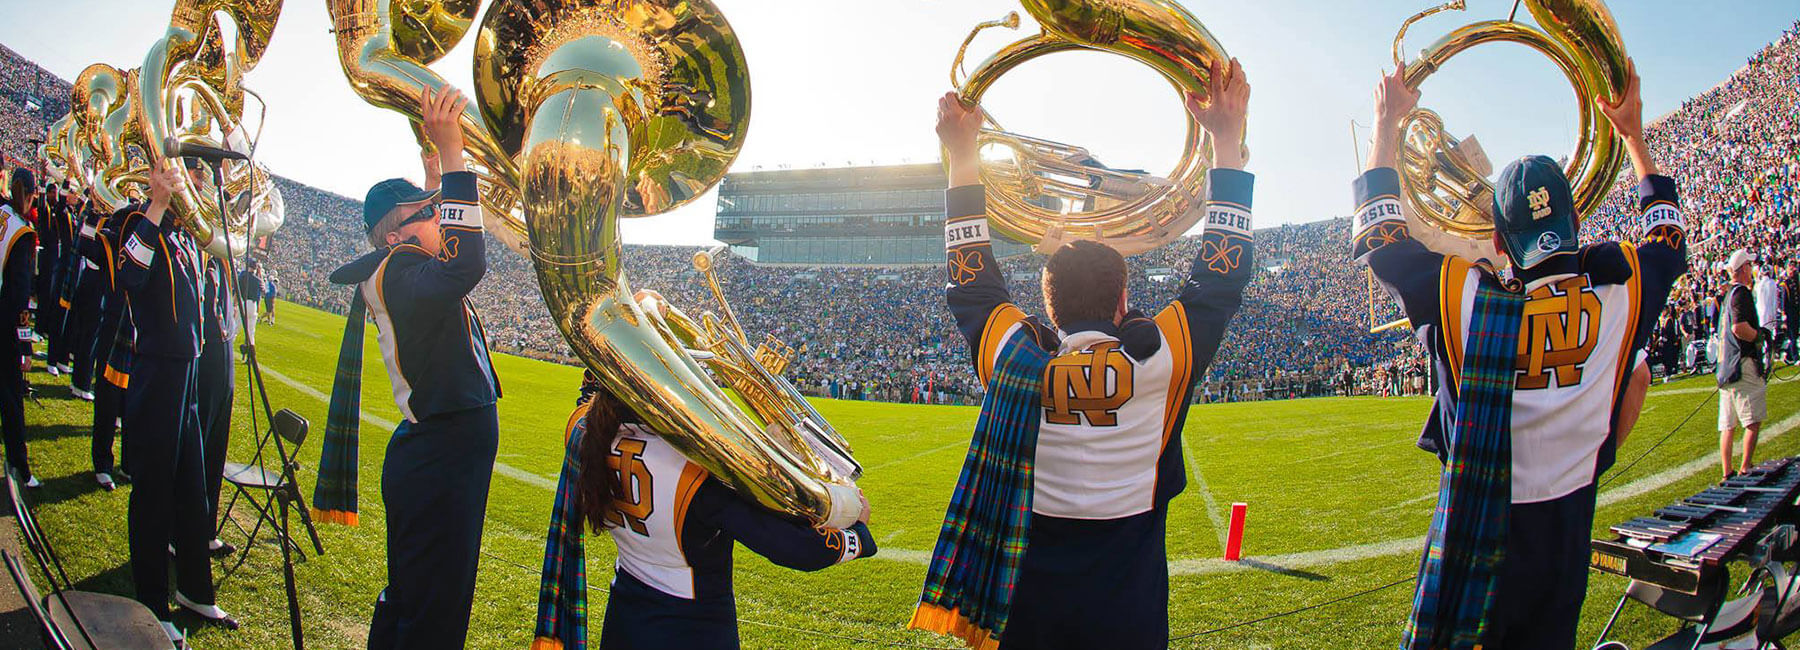 Southbend Notre Dame Football Marching Band